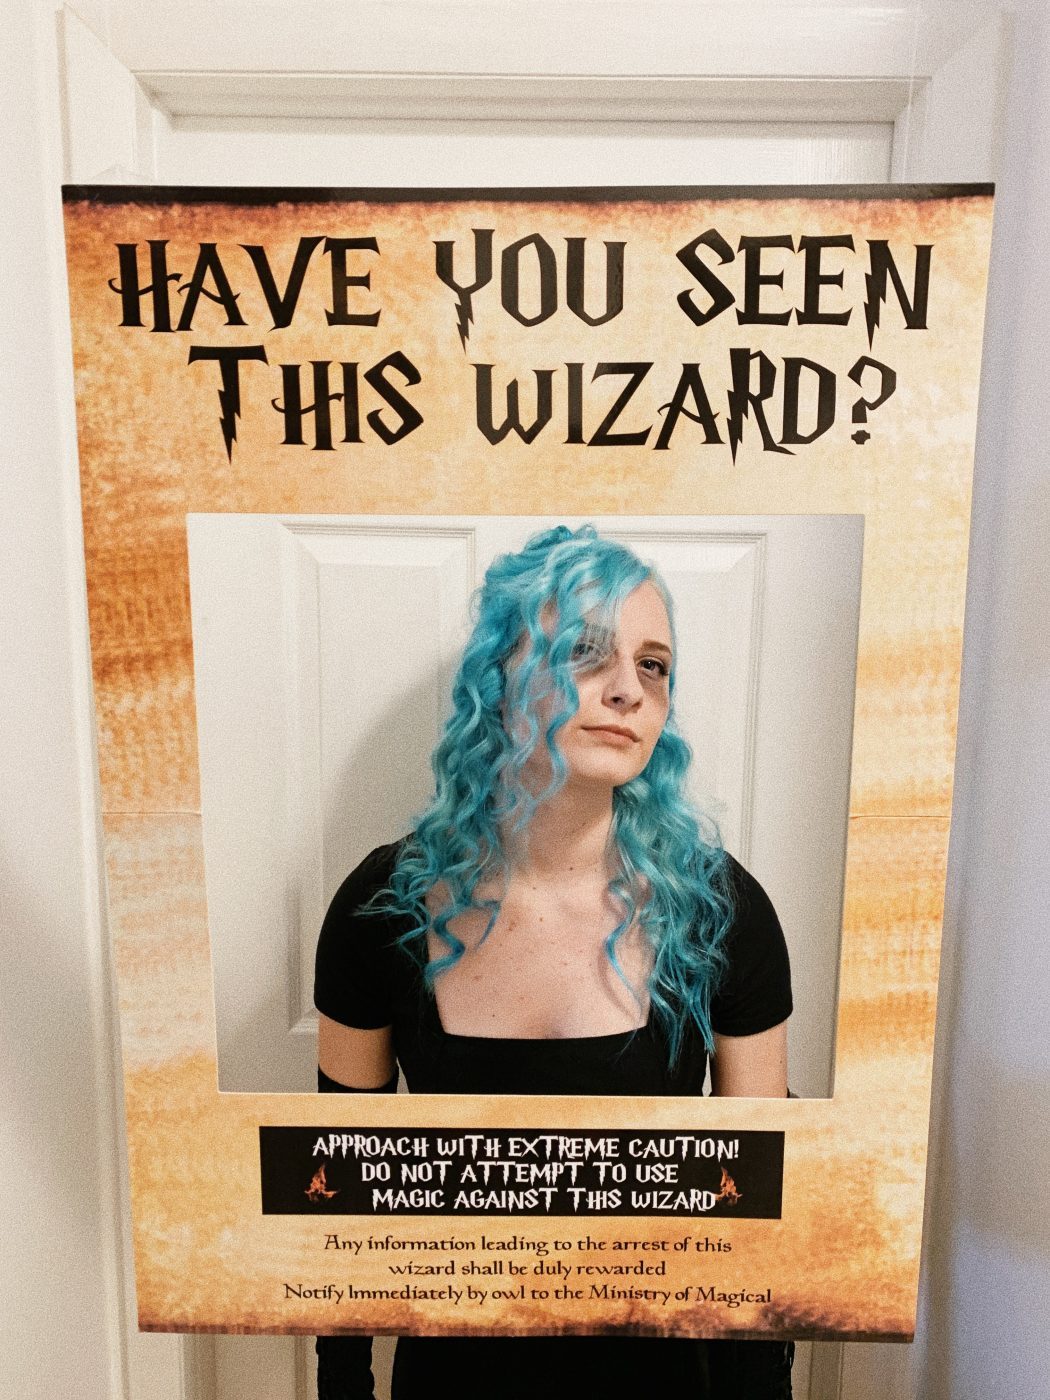 Have you seen this wizard photo opp